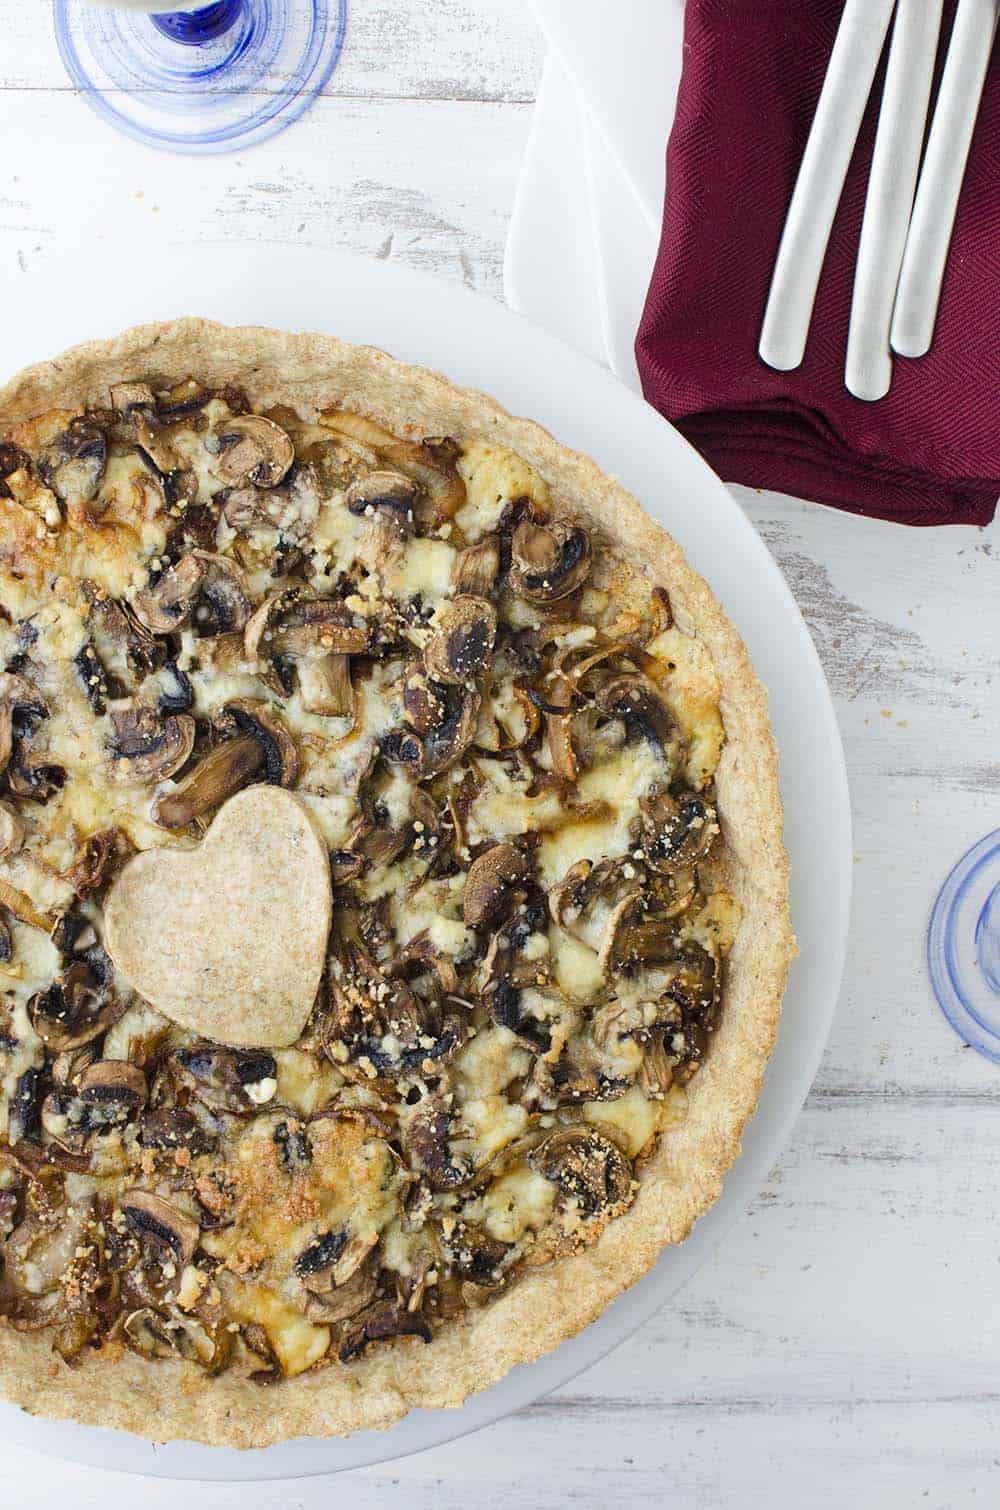 Caramelized onion and mushroom tart! The perfect vegetarian appetizer, side or main dish. Whole wheat tart stuffed with onions, mushrooms, and gorgonzola cheese.   www.delishknowledge.com